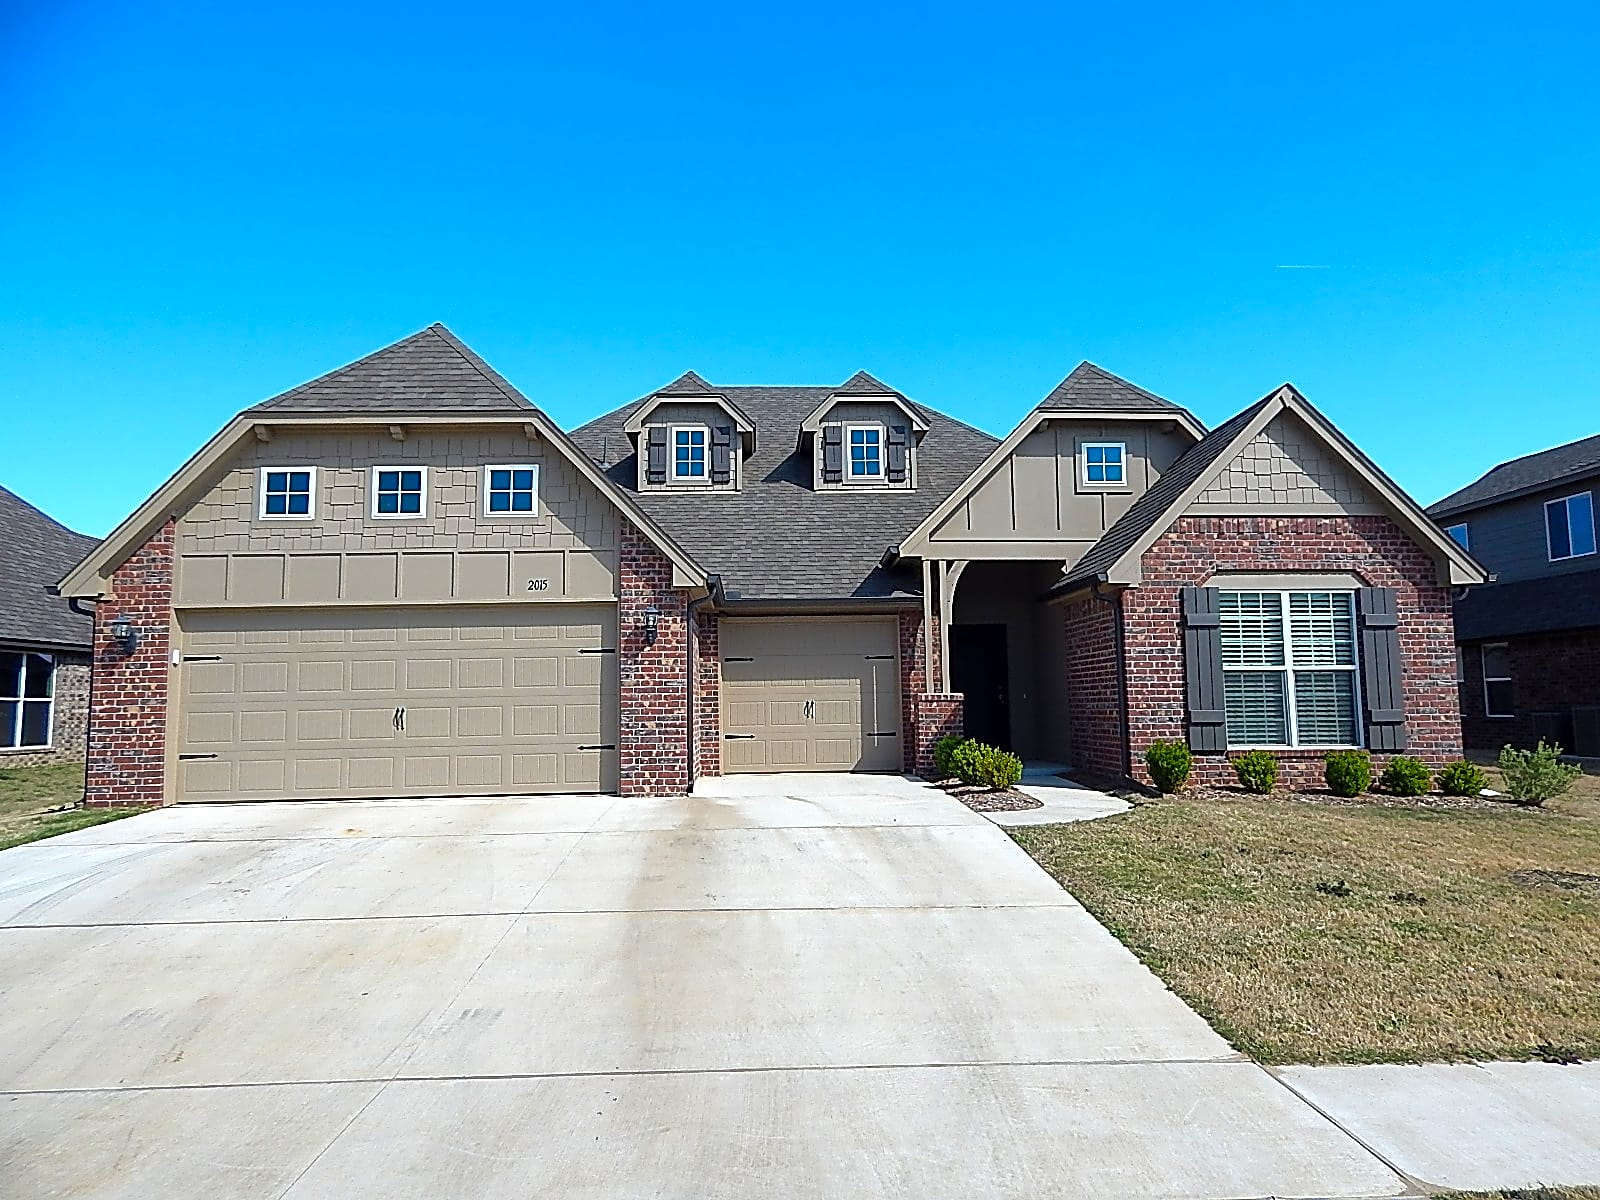 House for Rent in Bixby